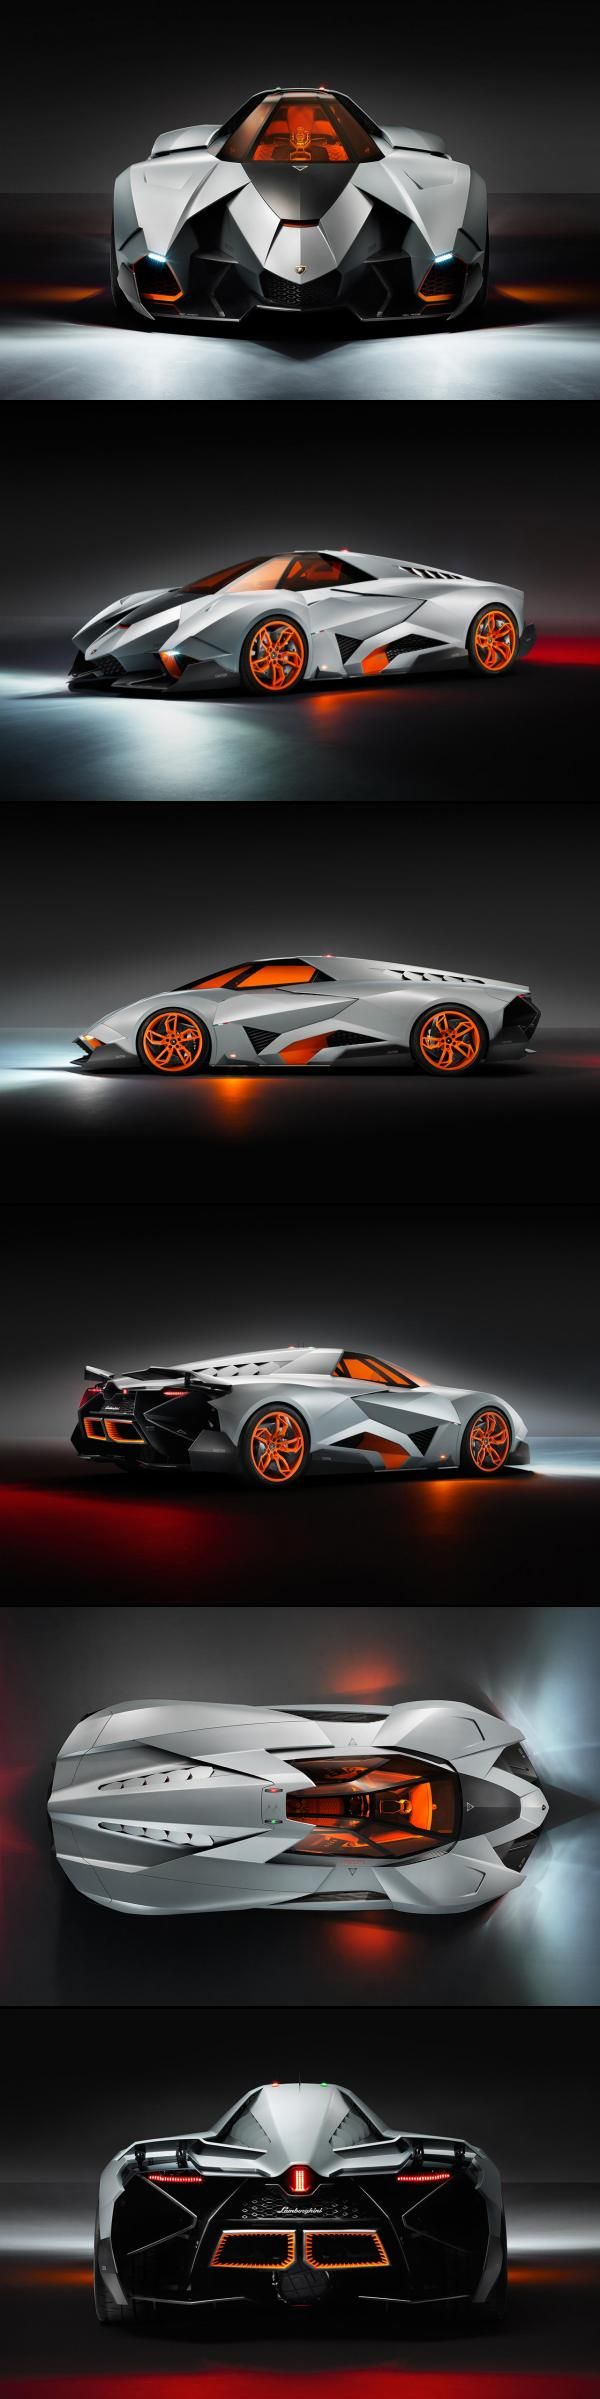 The Lamborghini Egoista – The Maddest Bull Ever. Hit the pic to find out why! #DreamCars #Rvinyl ========================== https://www.rvinyl.com/